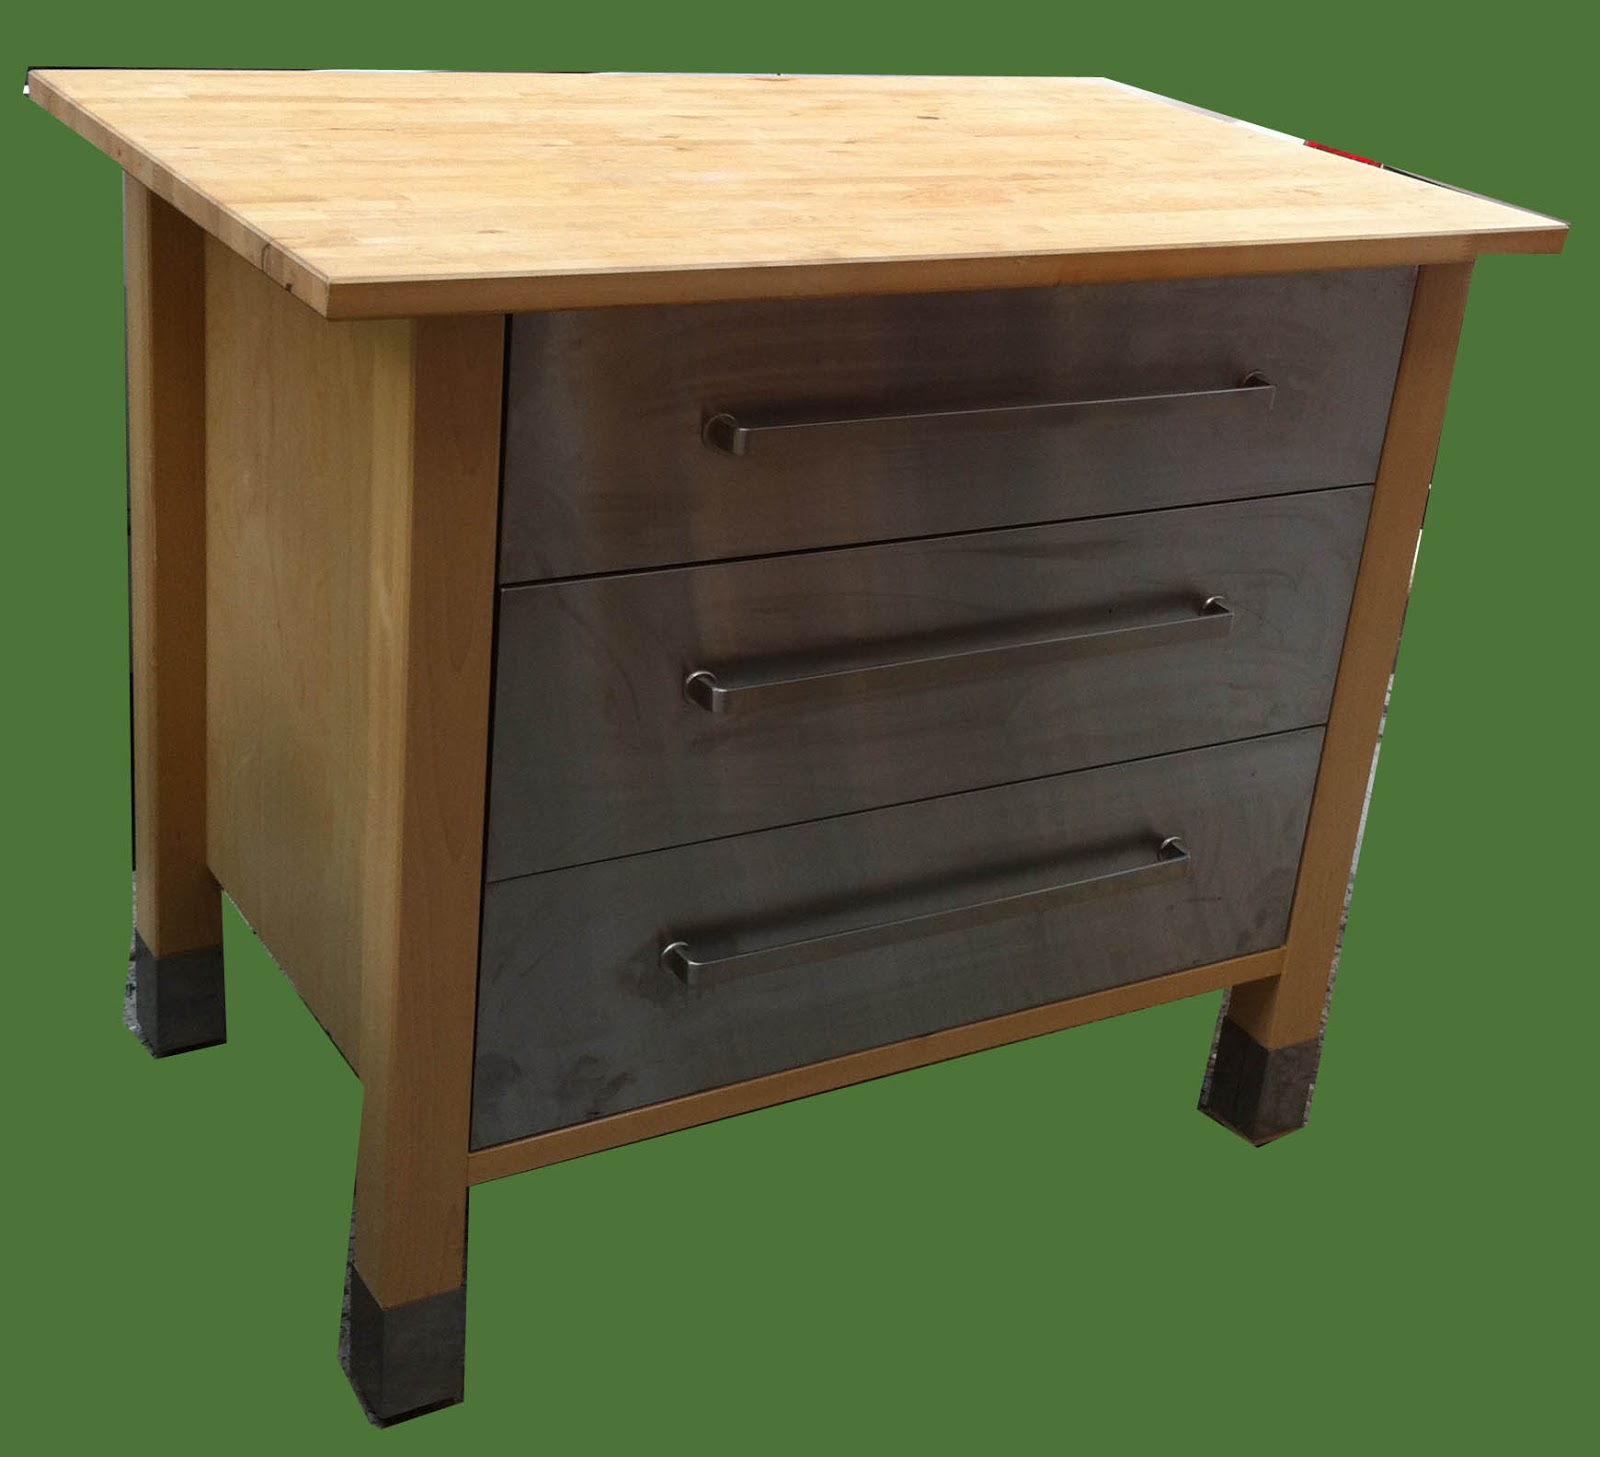 Uhuru Furniture & Collectibles Small Butcher Block